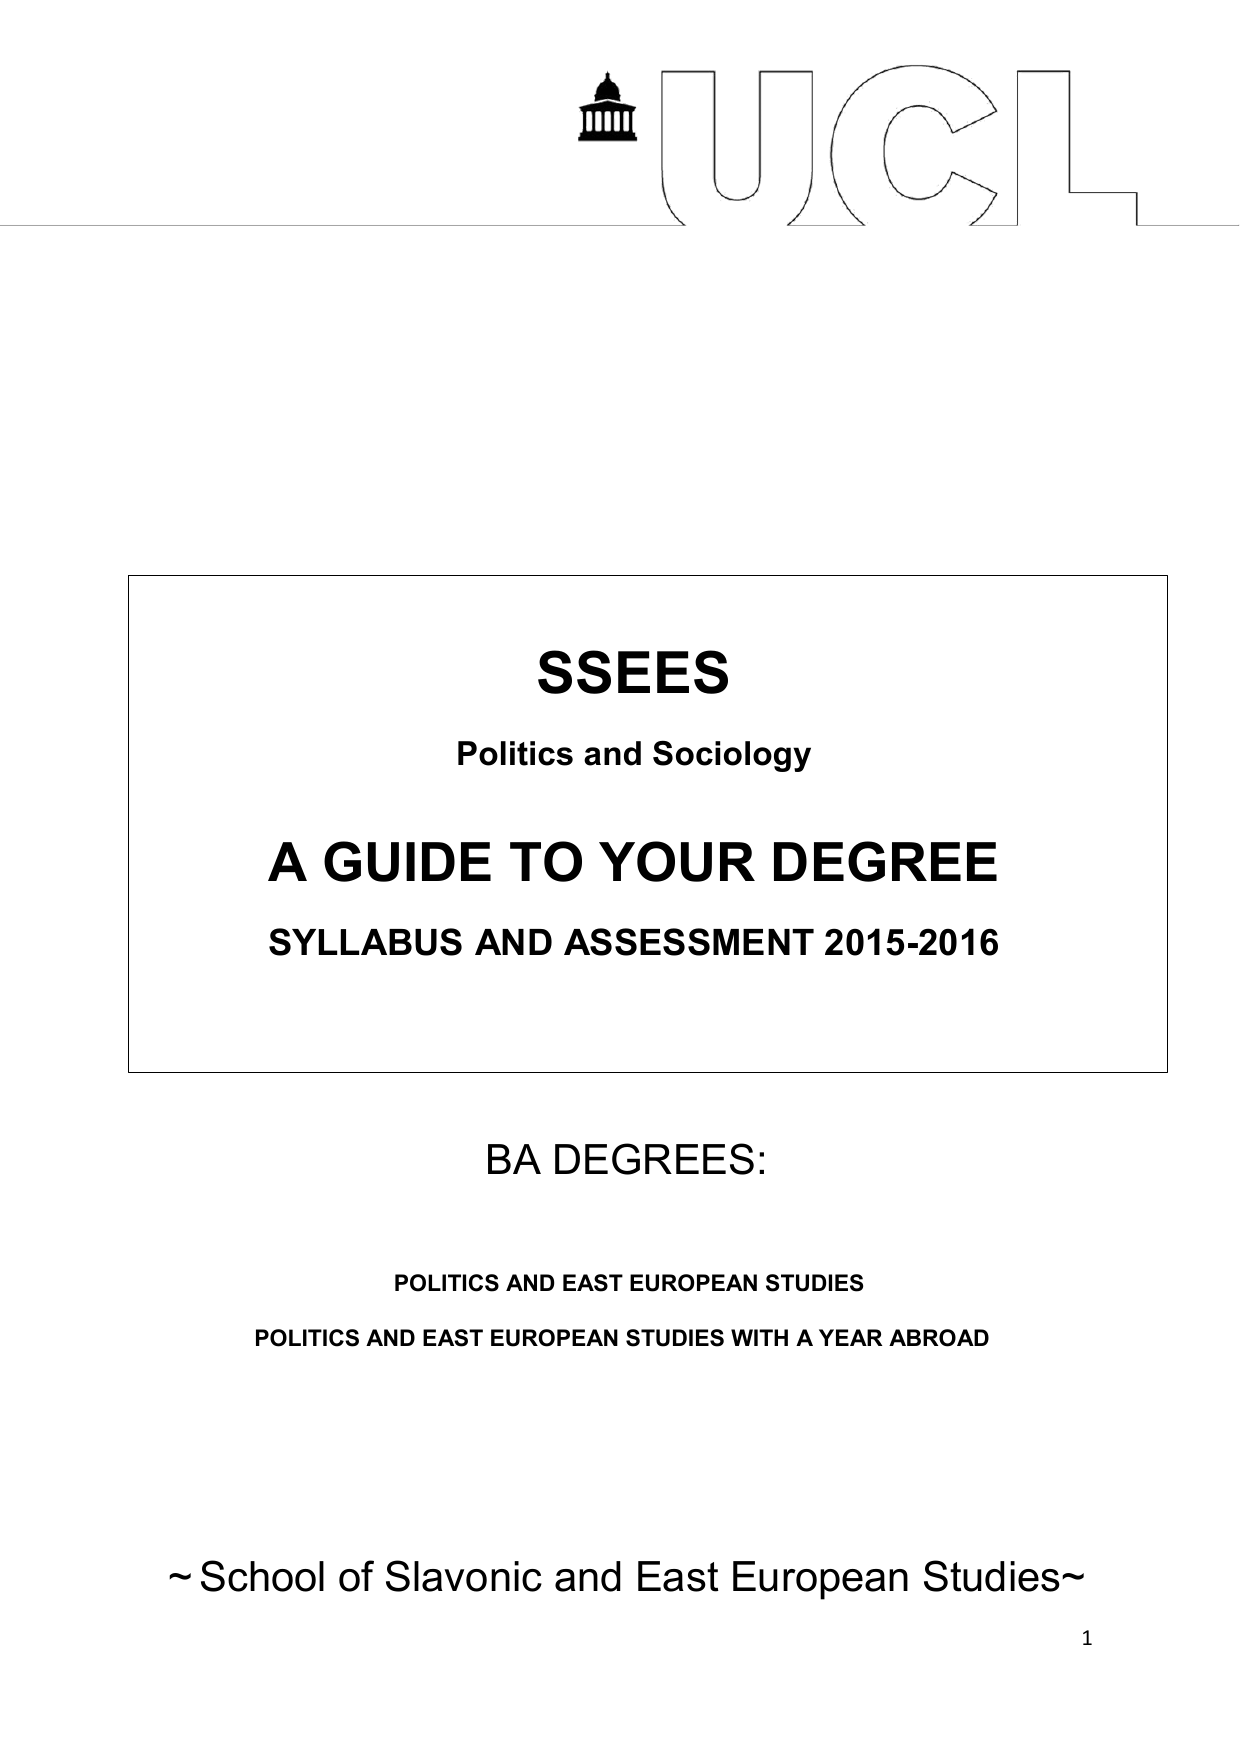 ssees dissertation guide